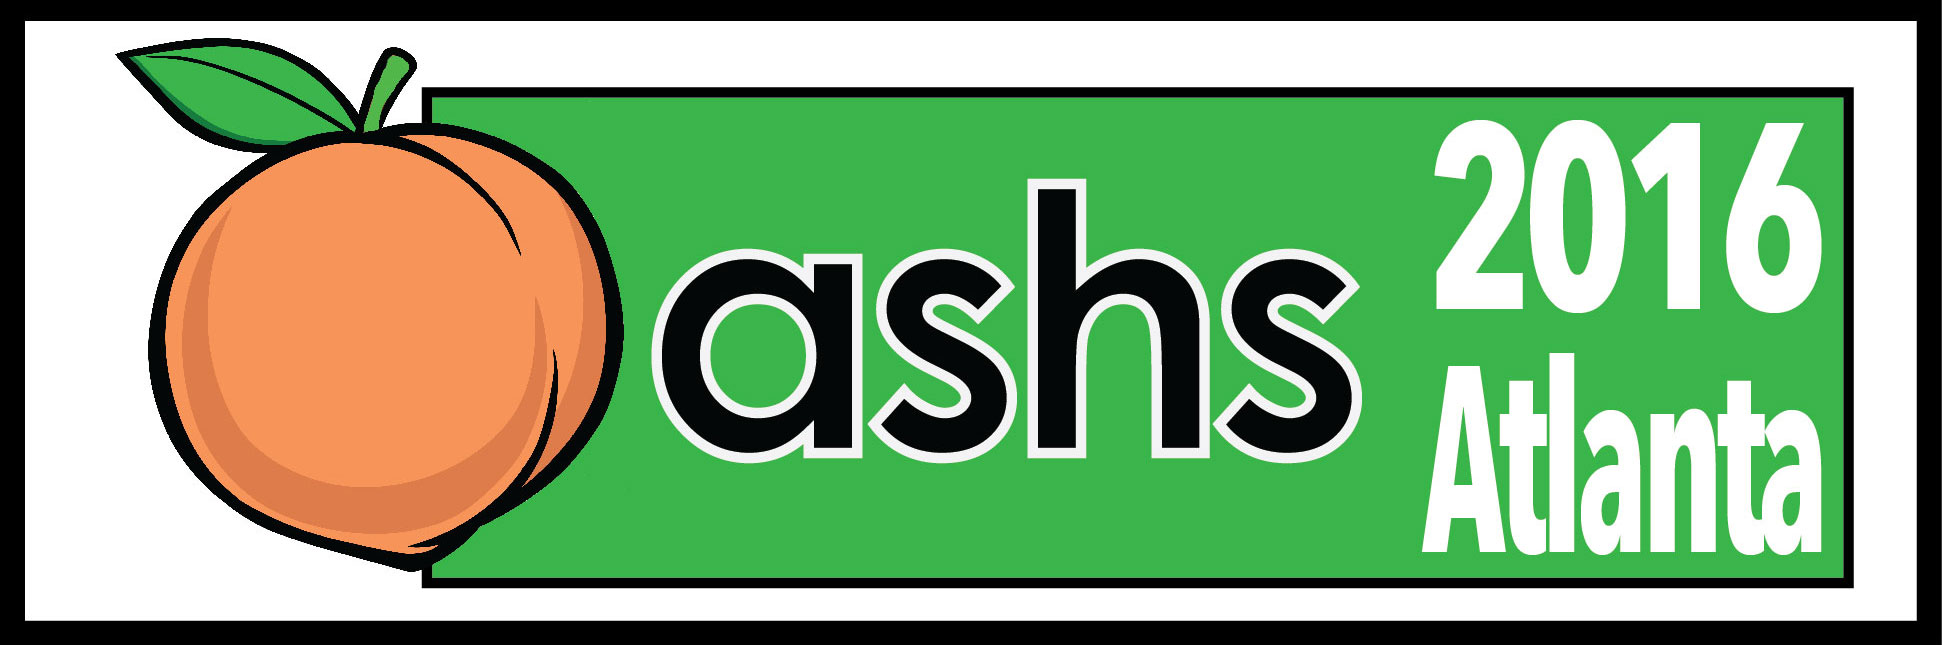 Visit Ashs Website